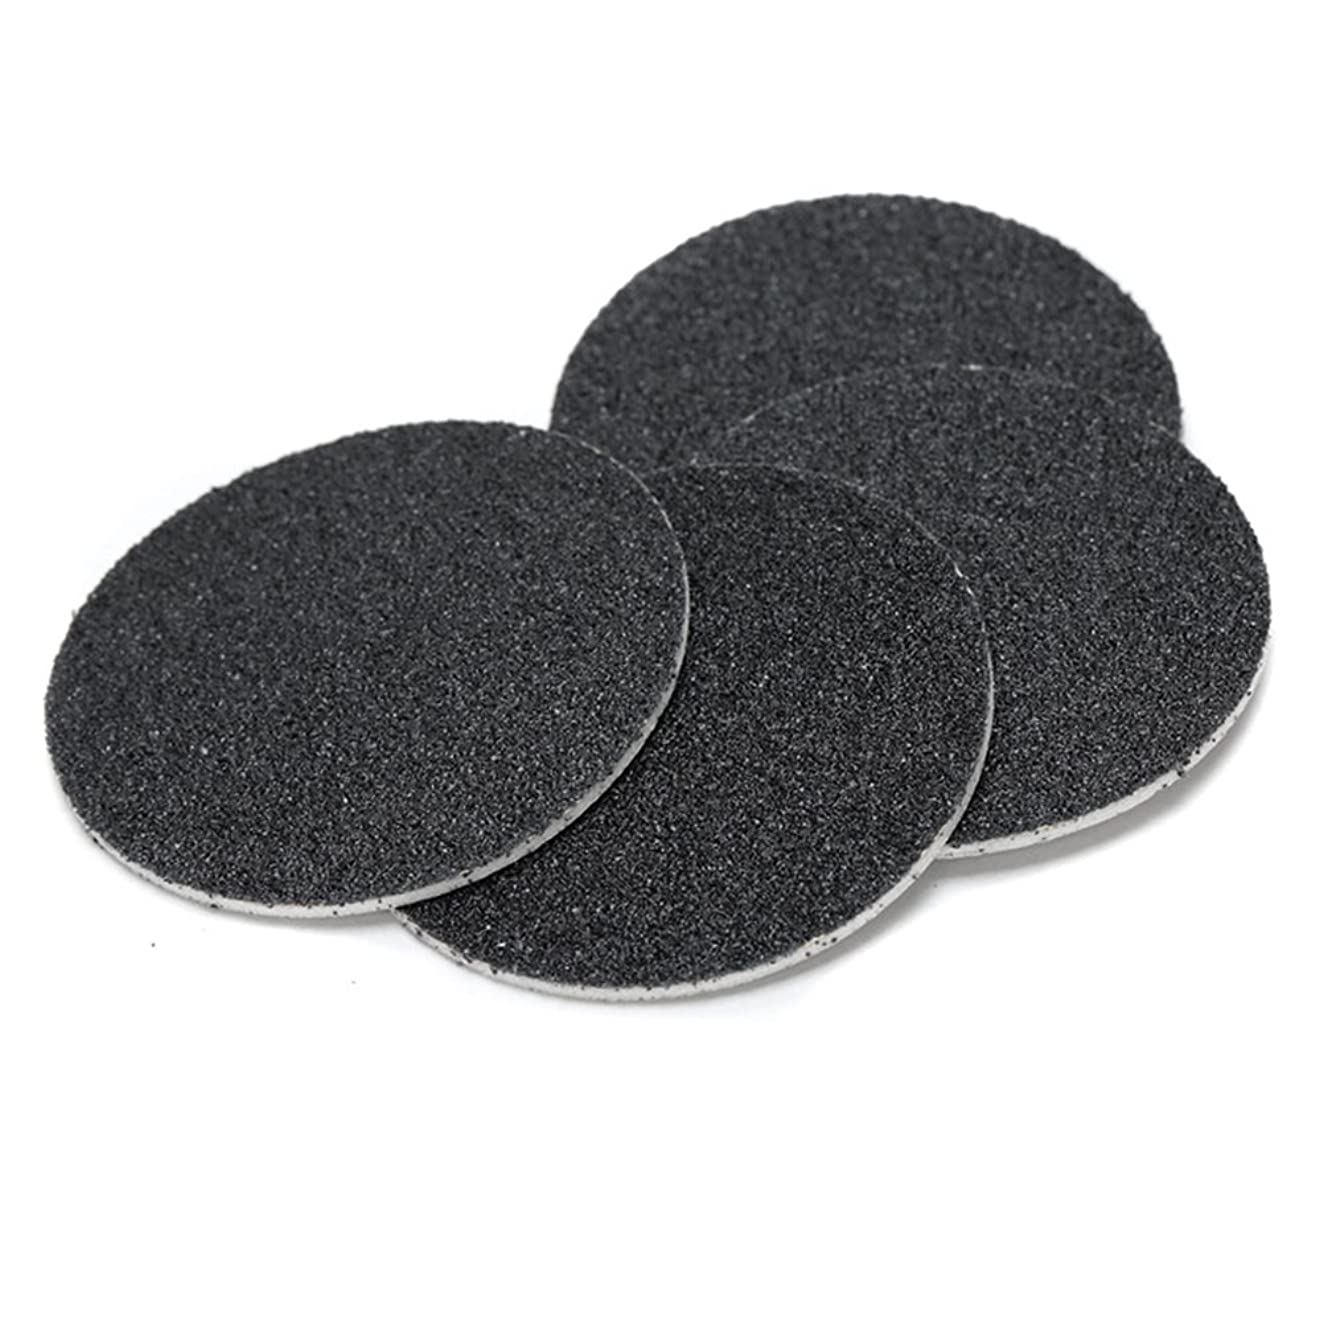 恥乳白色鯨Joint Victory Pedicure Tools 1 Box (60pcs) Replacement Sandpaper Discs Pad for Electric Foot File Callus Remover Black (Sandpaper Discs)